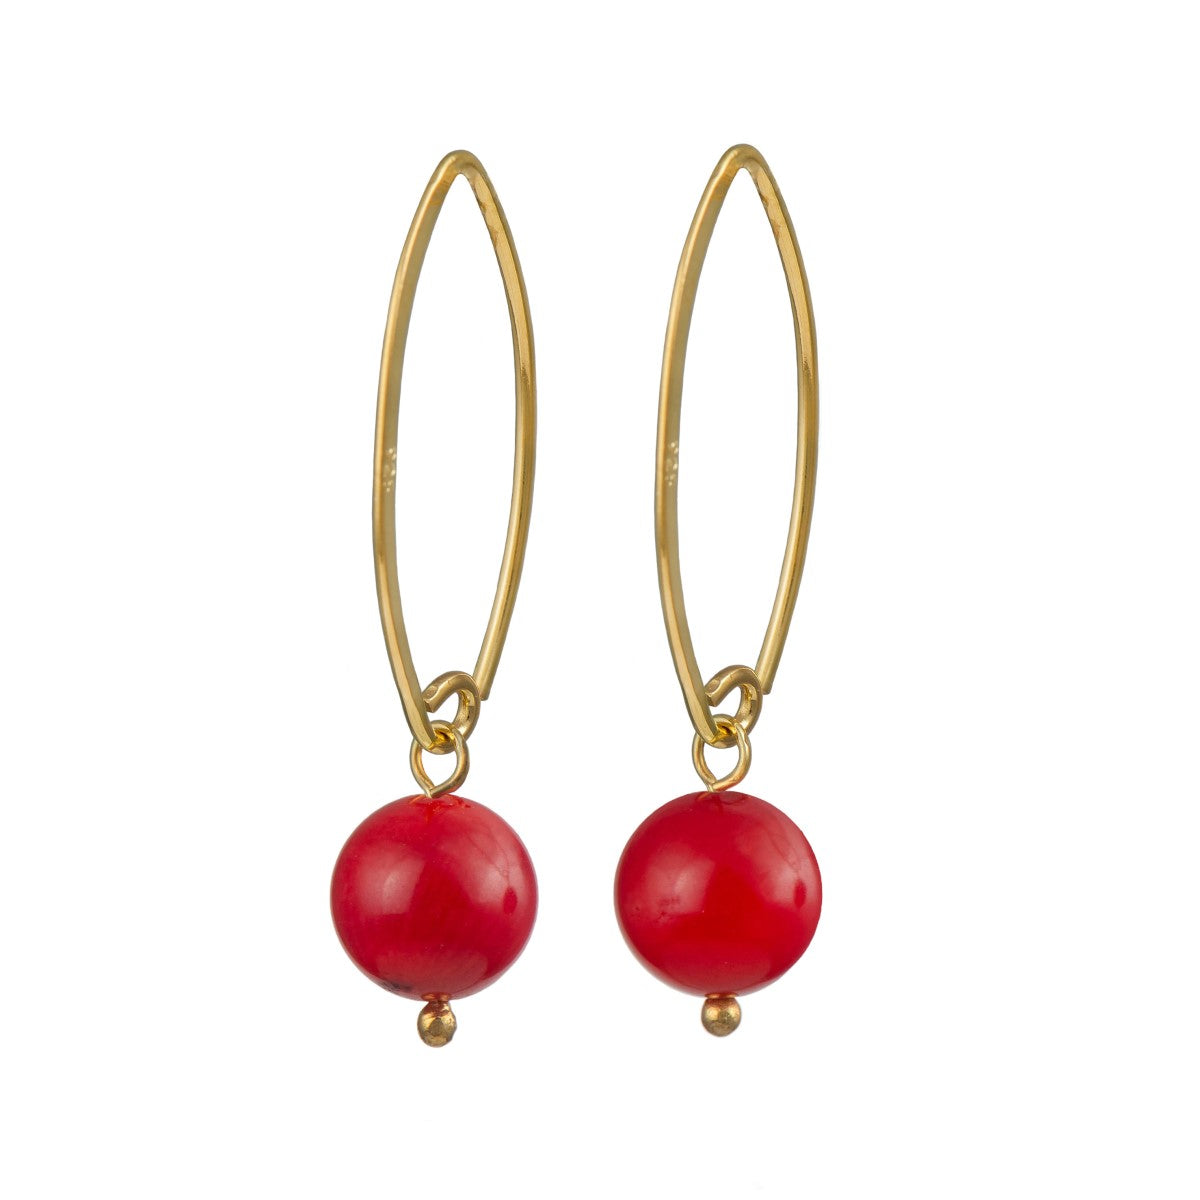 Gold Plated Silver Earrings - Coral Drop